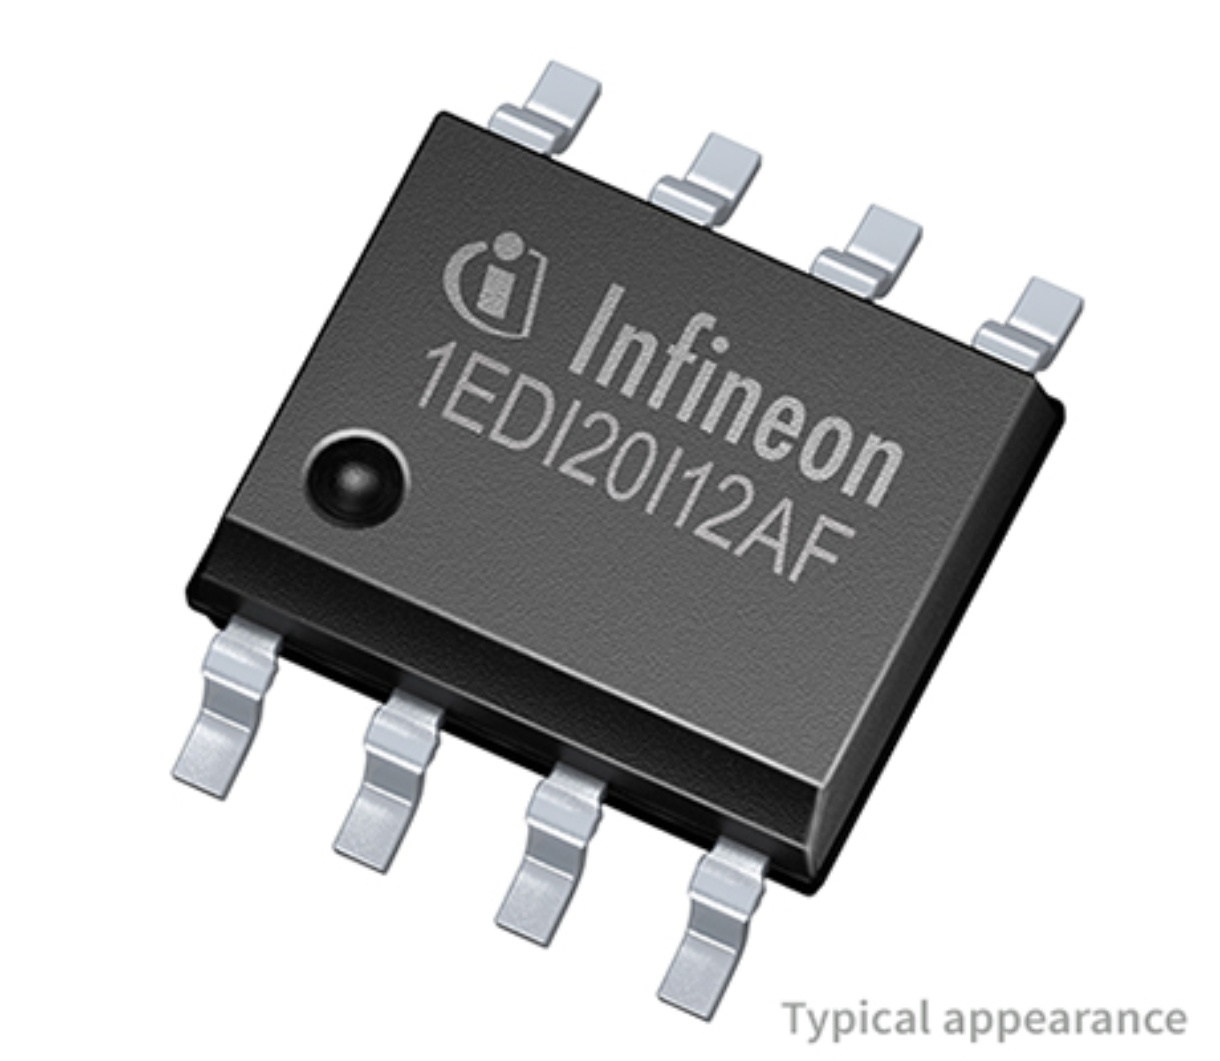 1edi20i12af Infineon Technologies Op Amp How To Cut Power Off When A Certain Voltage From Sensor Is 02 00 2015 Pdf 19 Mb